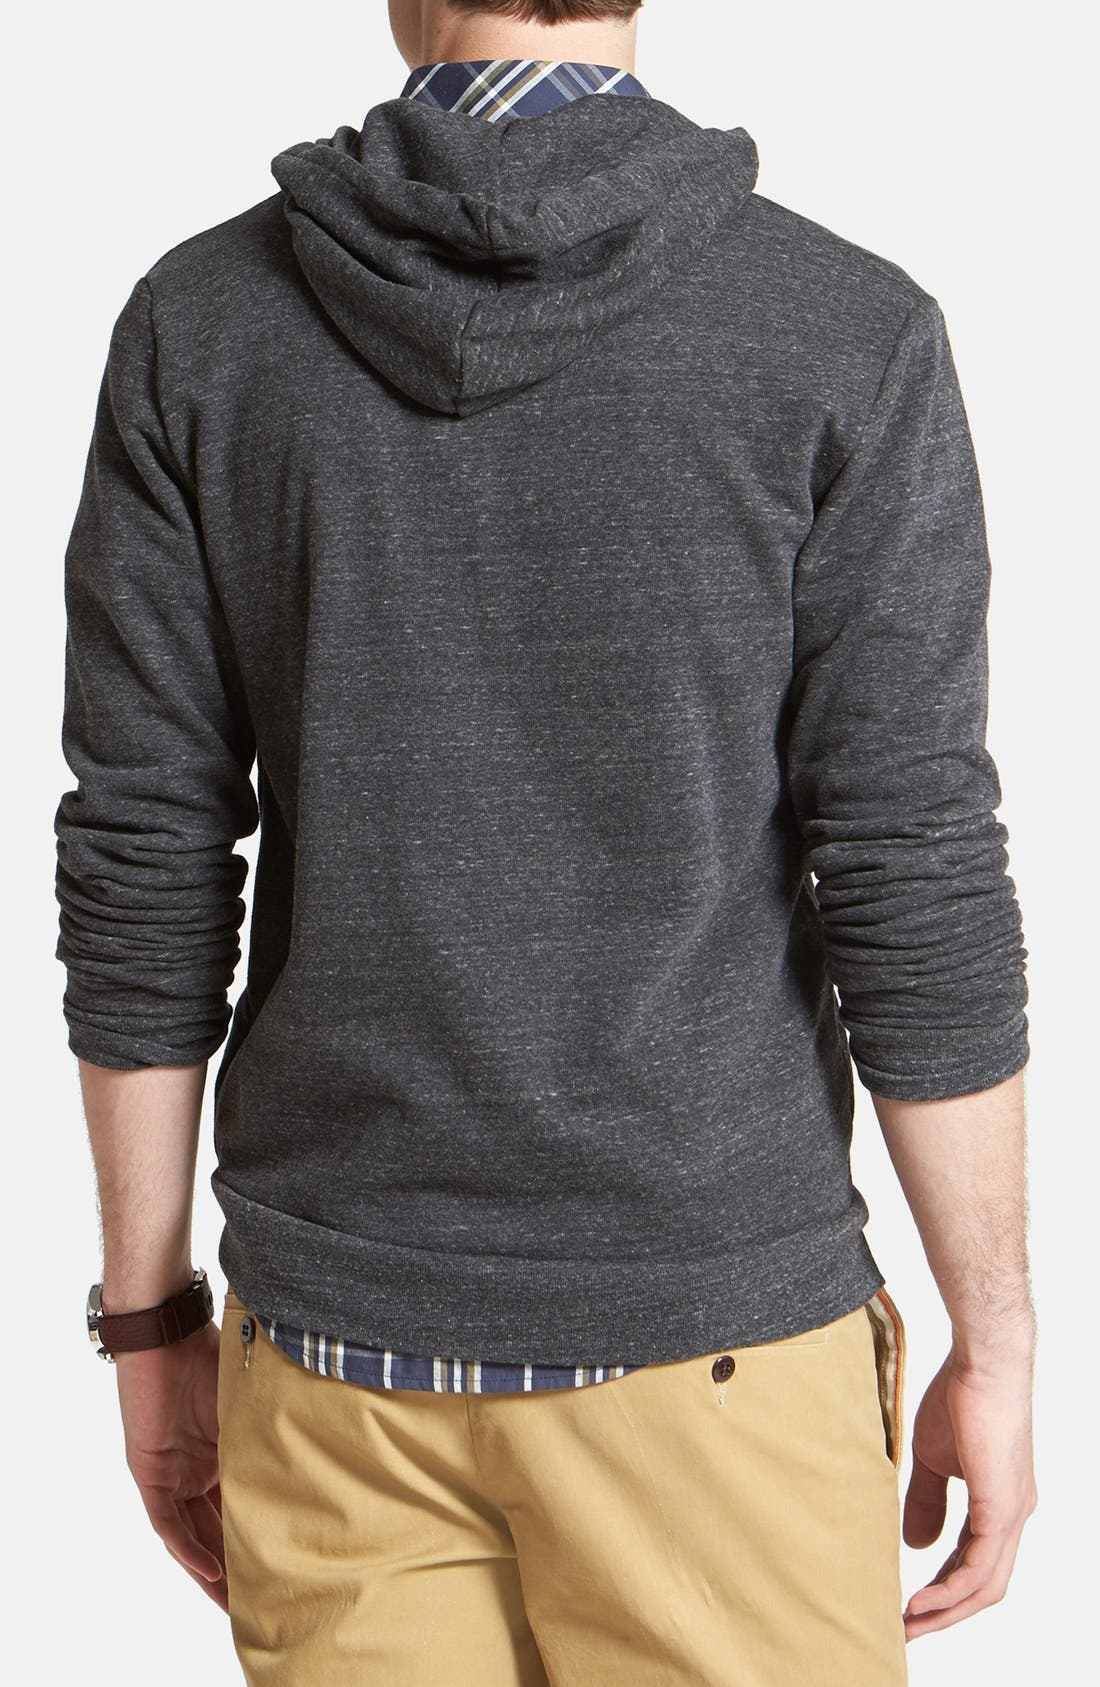 Threads for Thought Trim Fit Heathered Hoodie,                             Alternate thumbnail 3, color,                             008